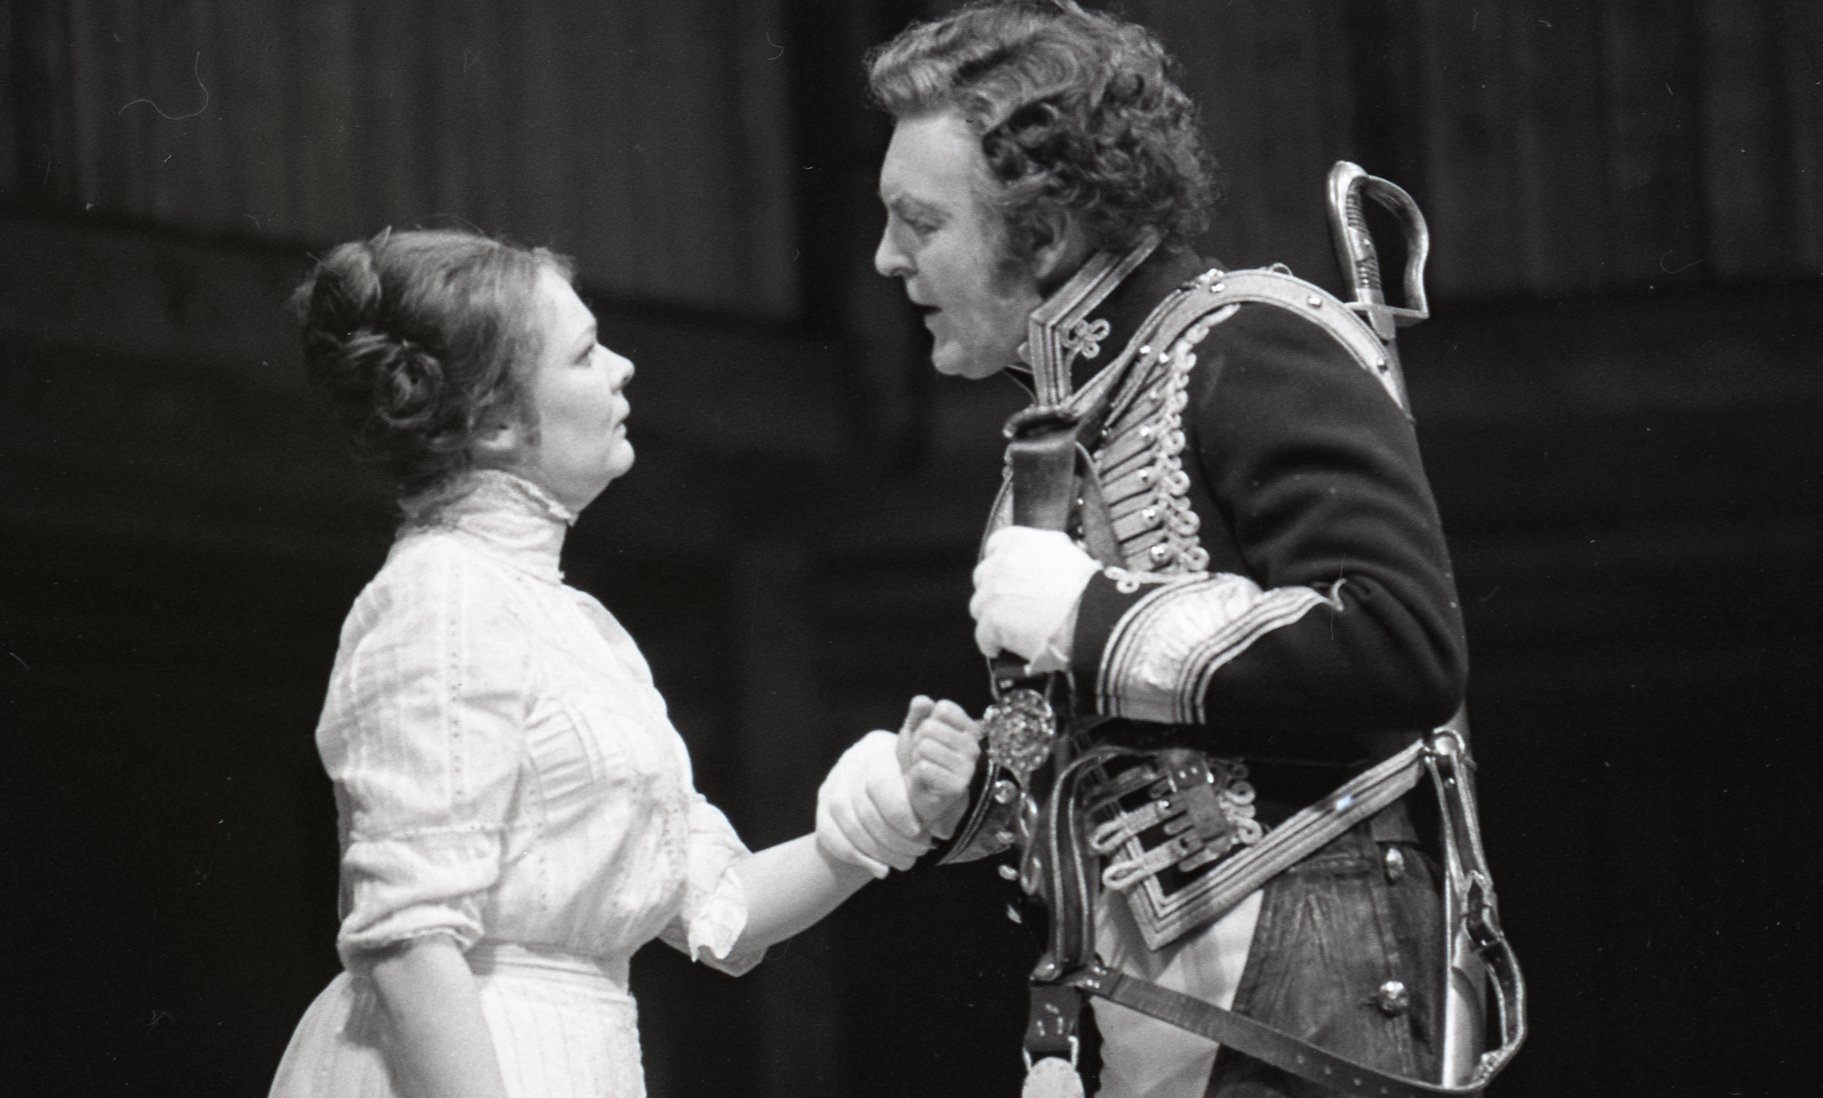 Benedick, in full uniform, grabs hold of Beatrice's arm.